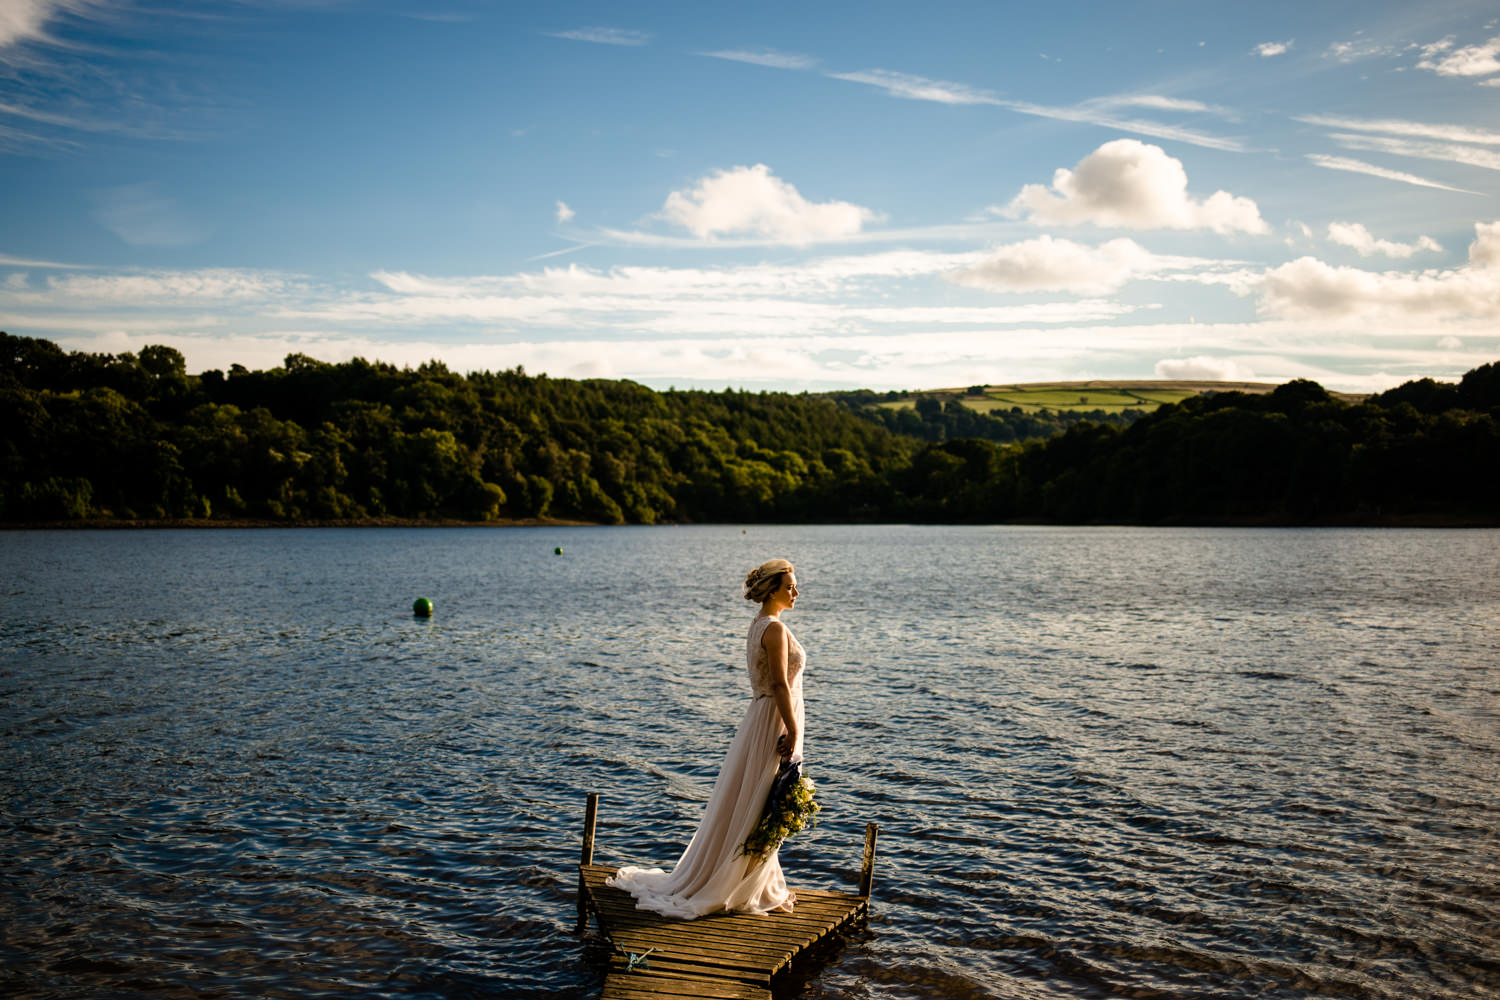 Peak-District-Wedding-Photography-05.jpg